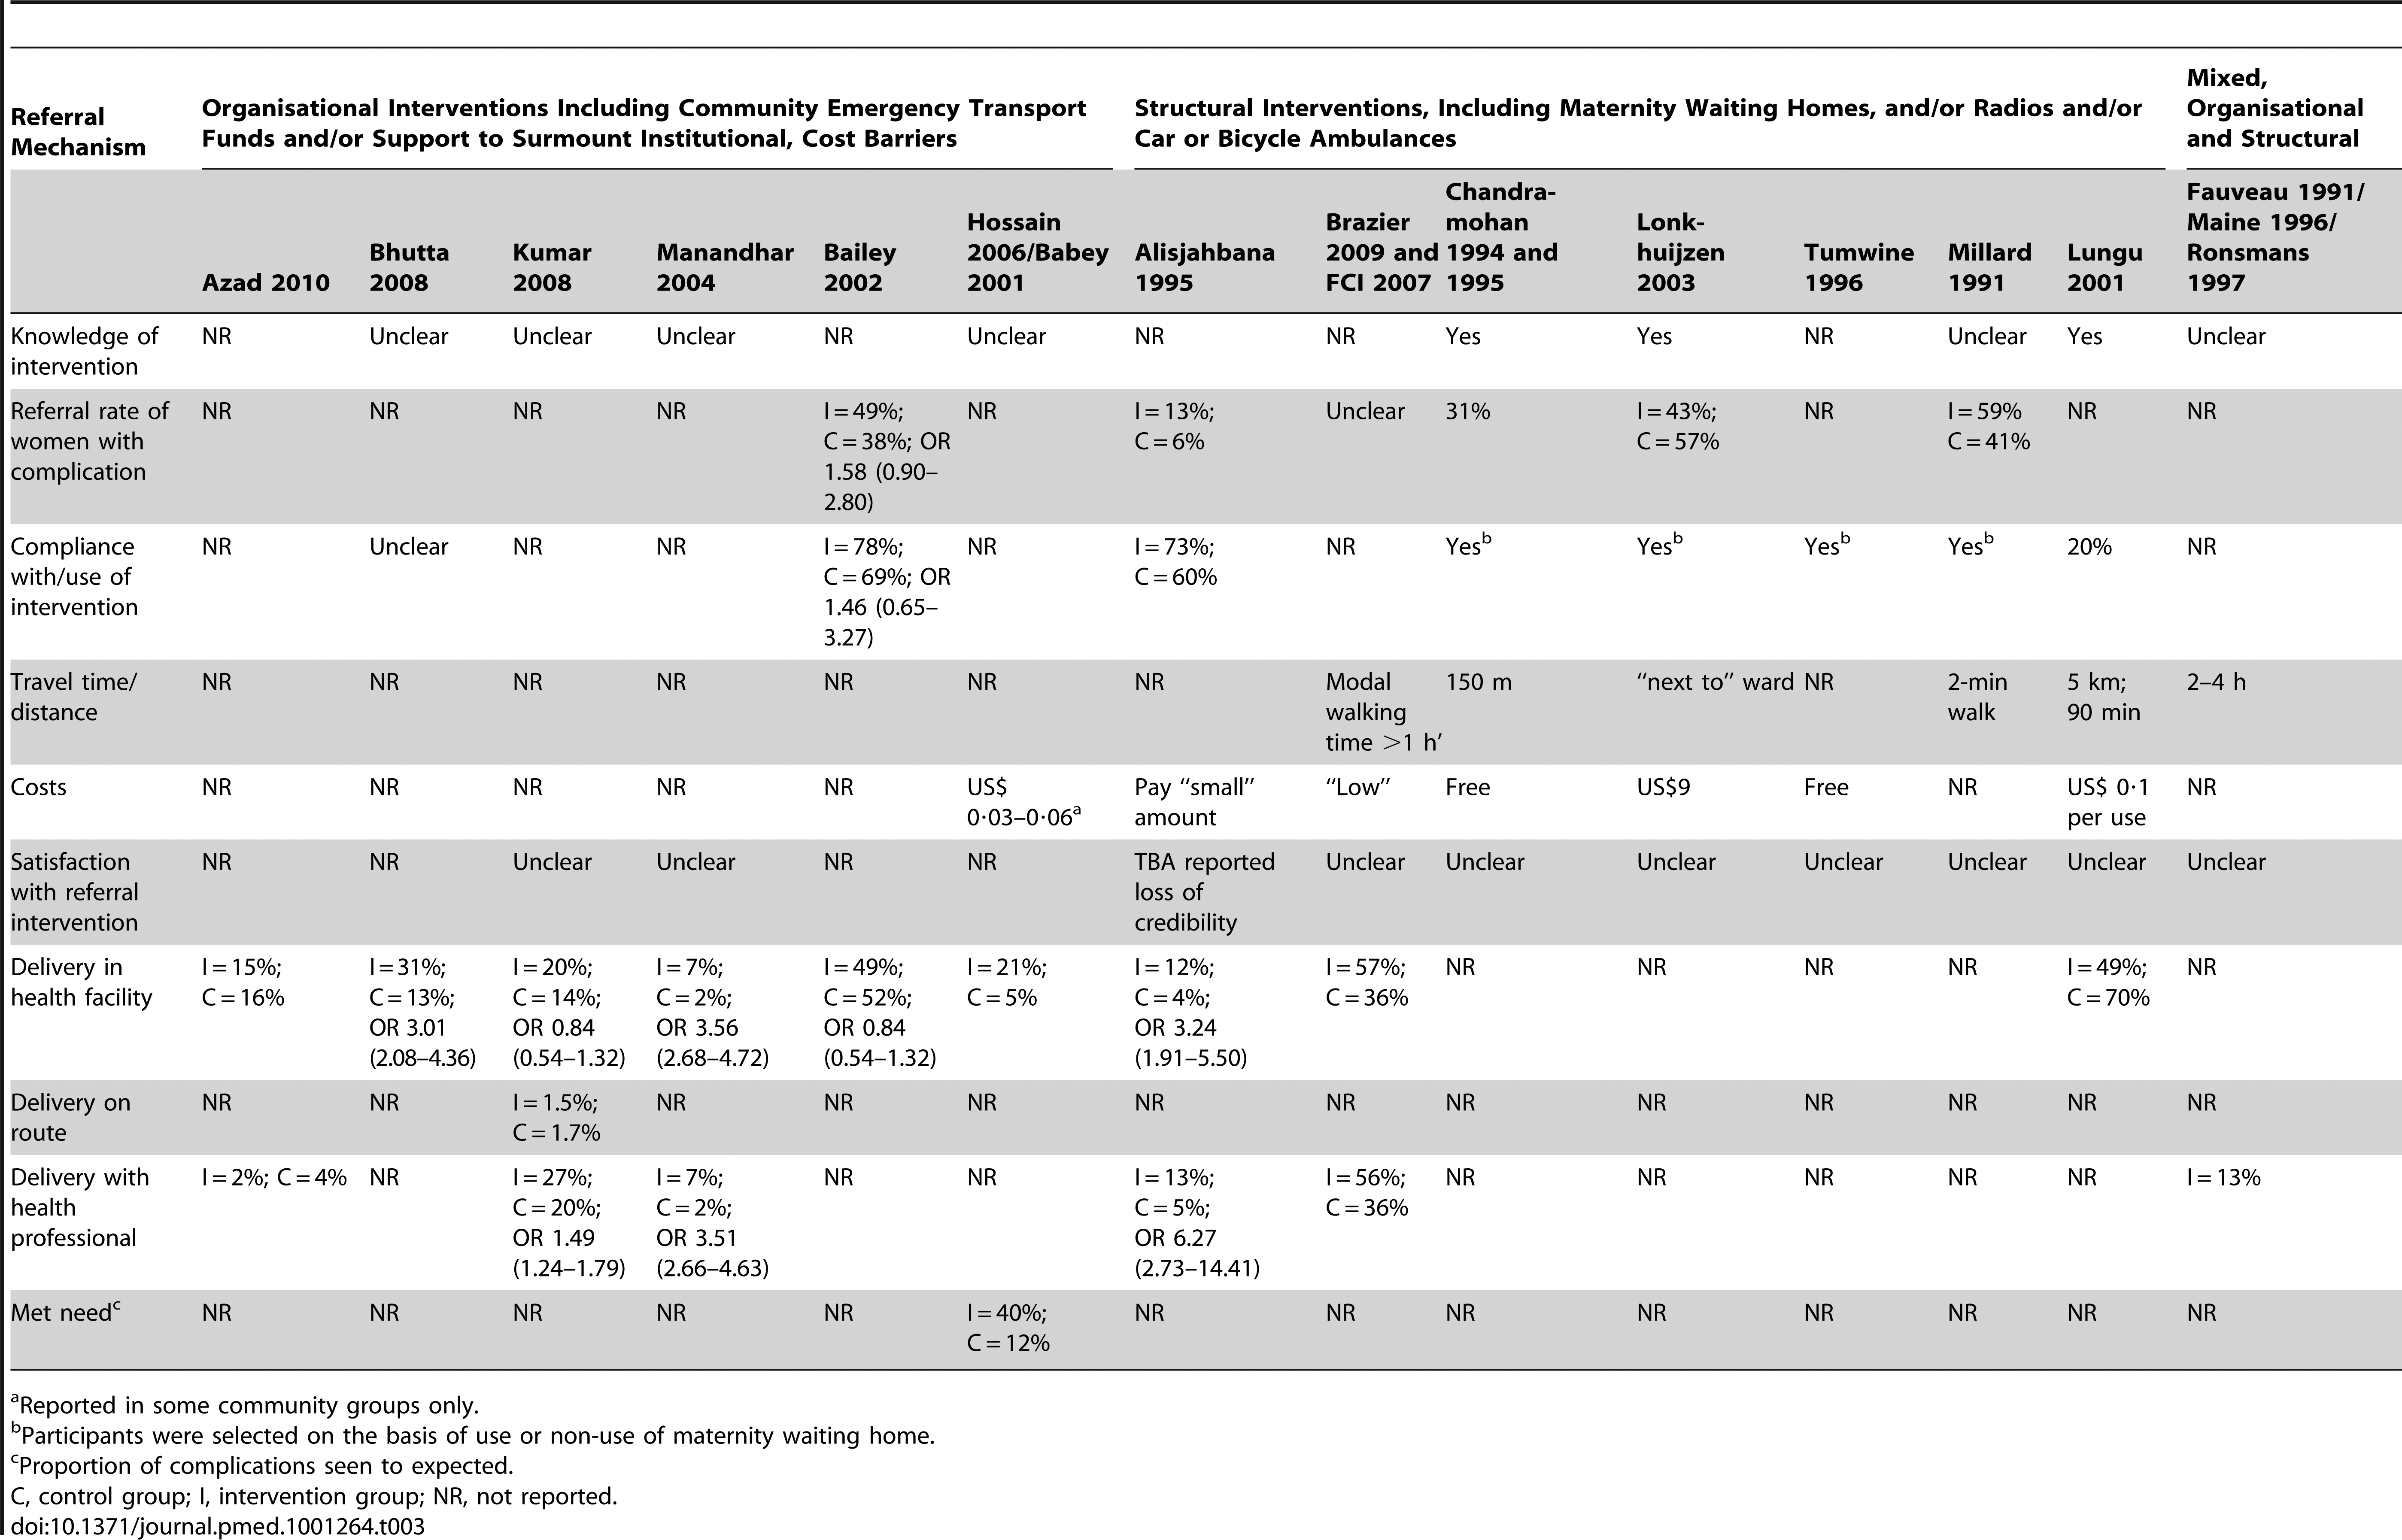 Summary table of intermediate outcomes and process measures, after intervention.